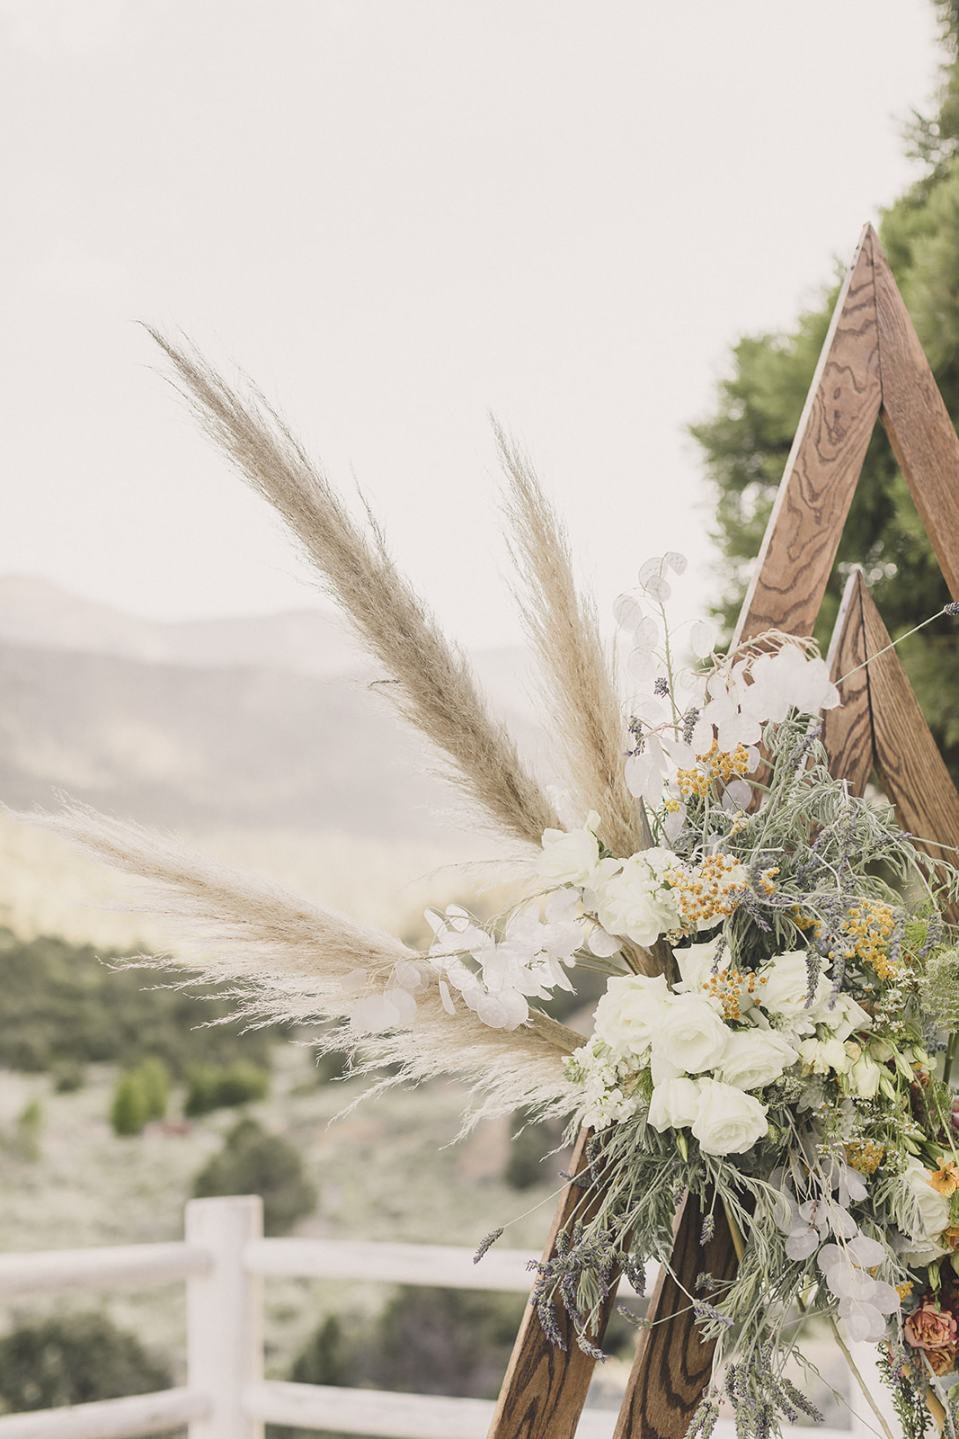 arbor details for modern triangle ceremony arch photographed by Taylor Made Photography